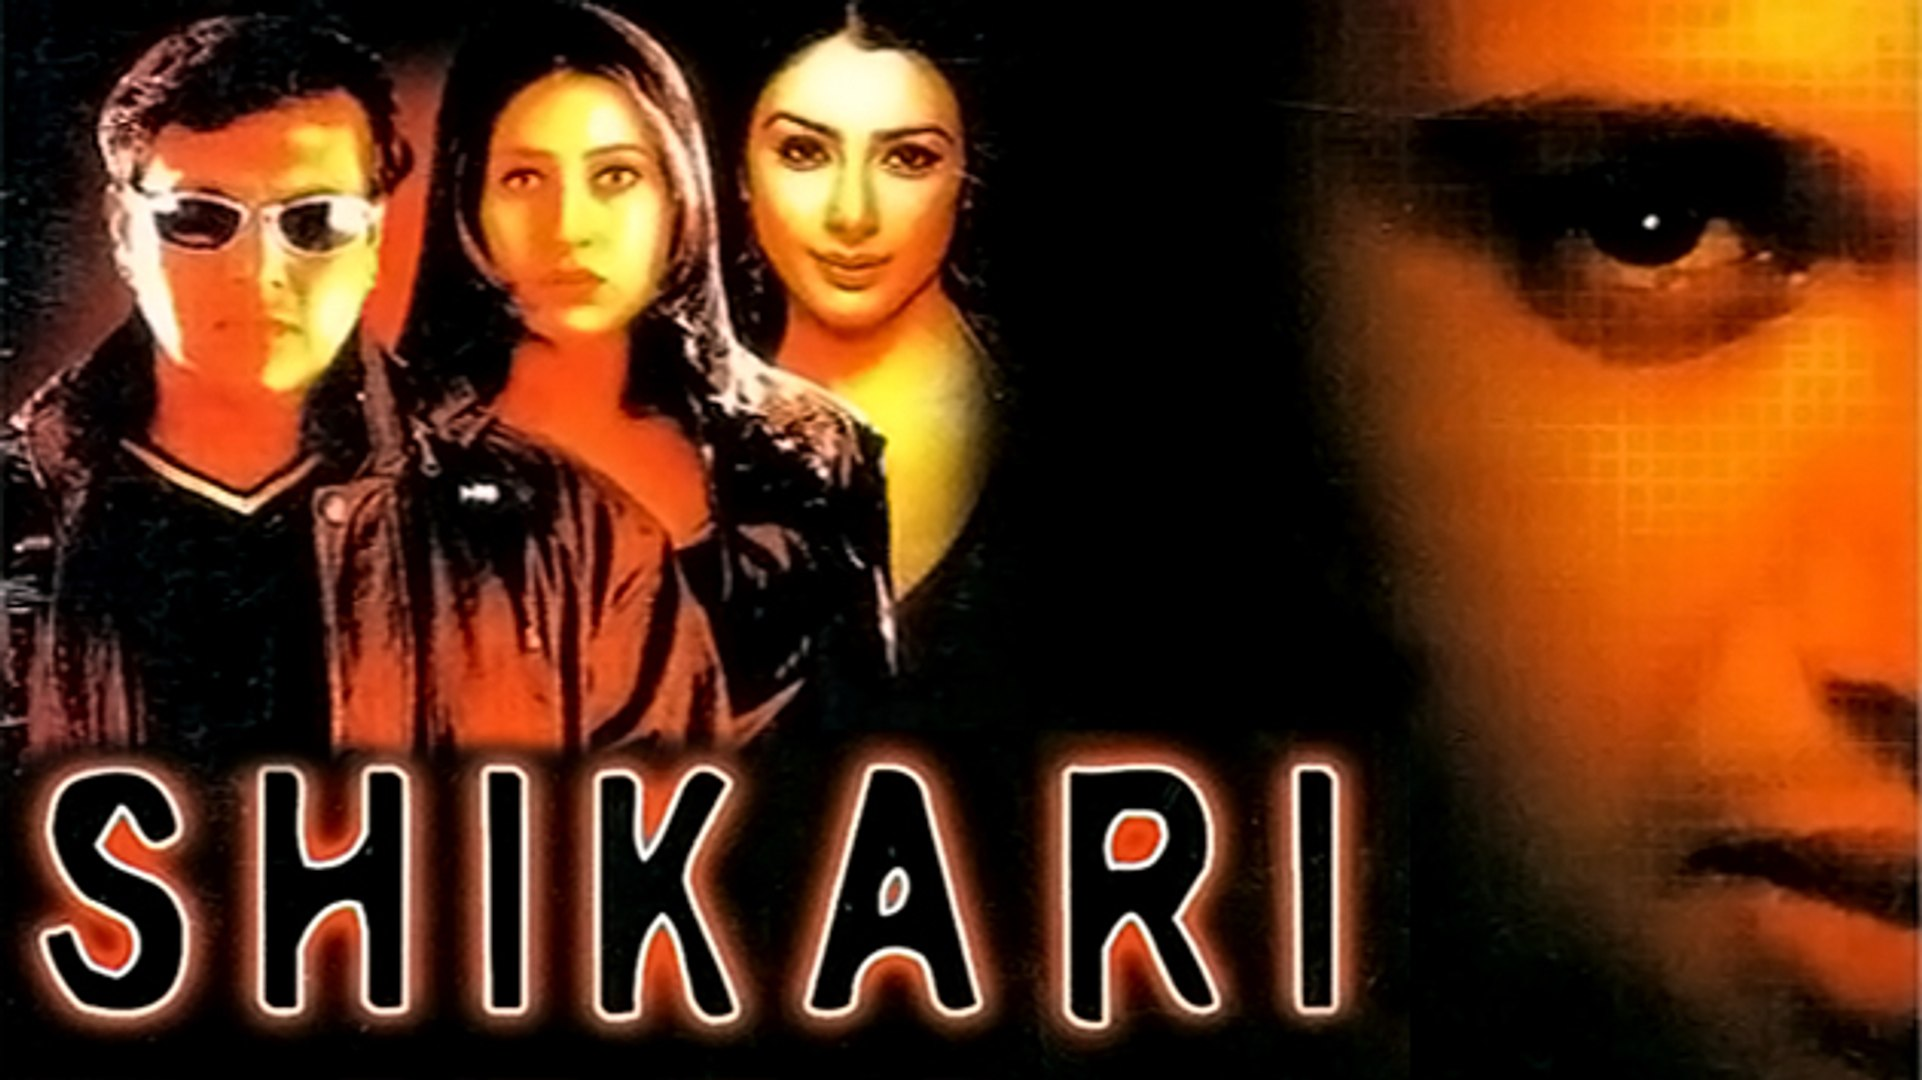 Shikari 2000 Full Movie Govinda Karishma Kapoor Tabu Kiran Kumar Johnny Lever